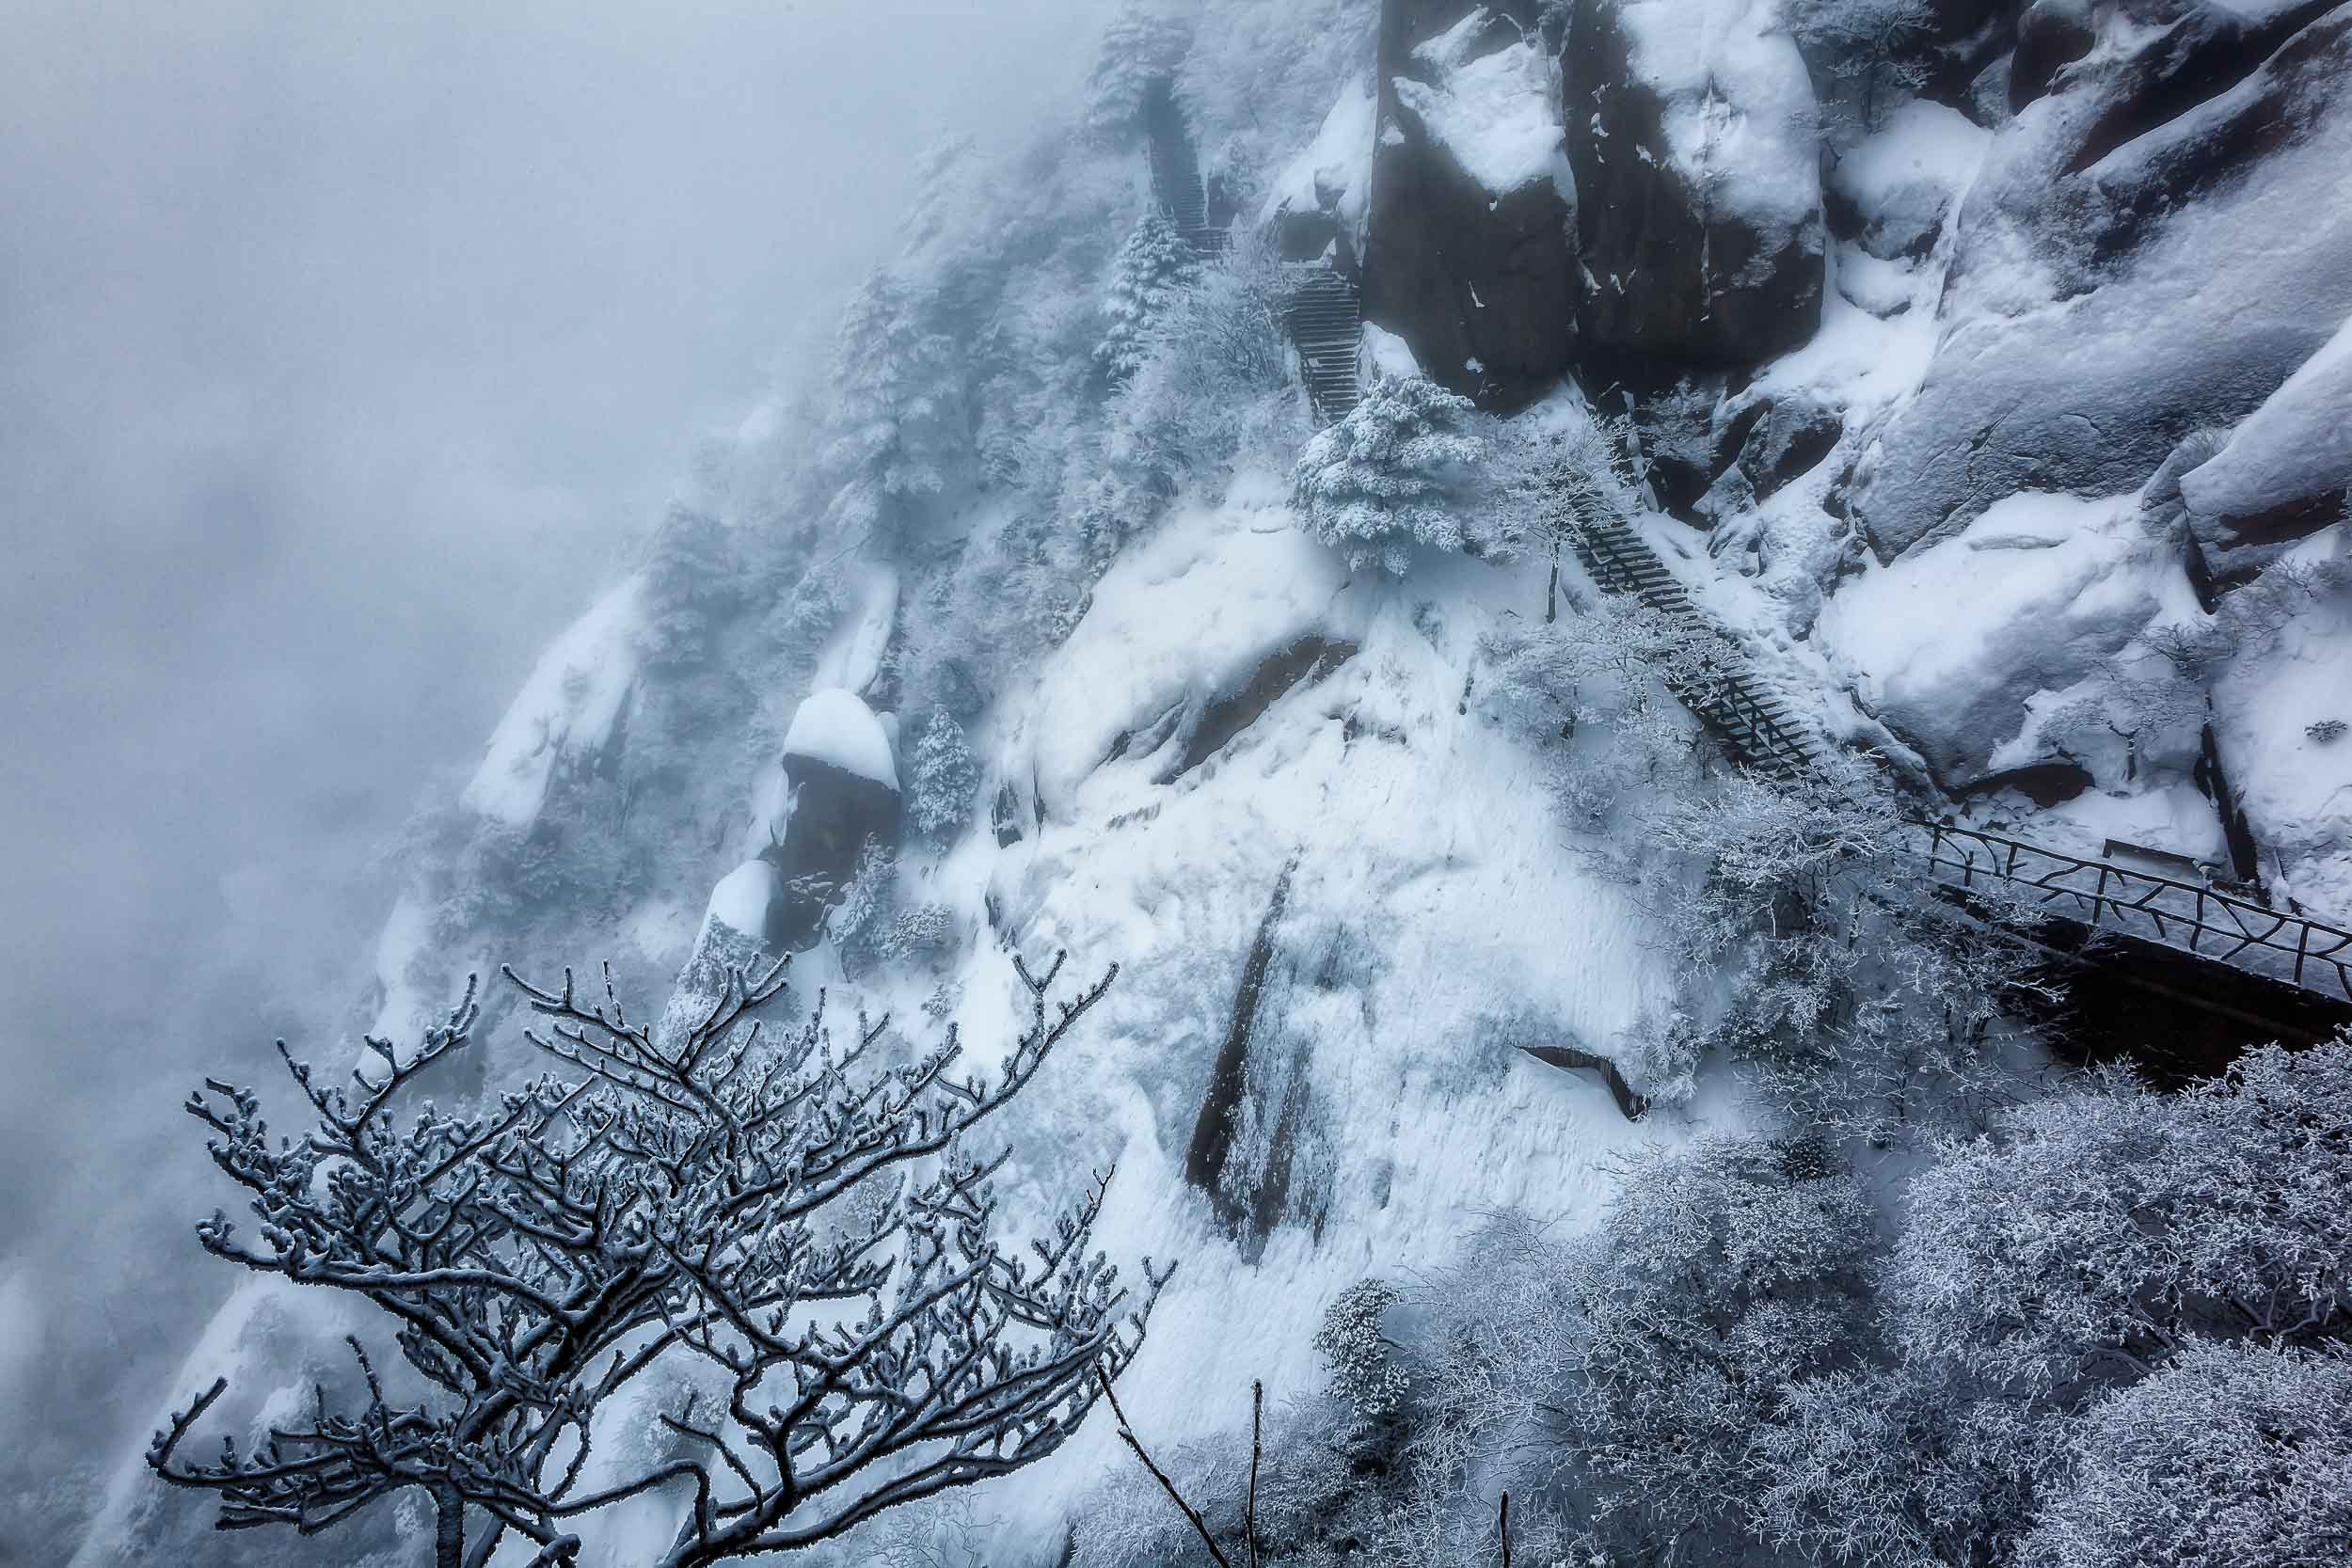 Deep snow    and    encroaching mist    almost hide my path, clinging to the side of the mountain, on    Huangshan    (i.e., Yellow Mountain) in    China    in the middle of winter.